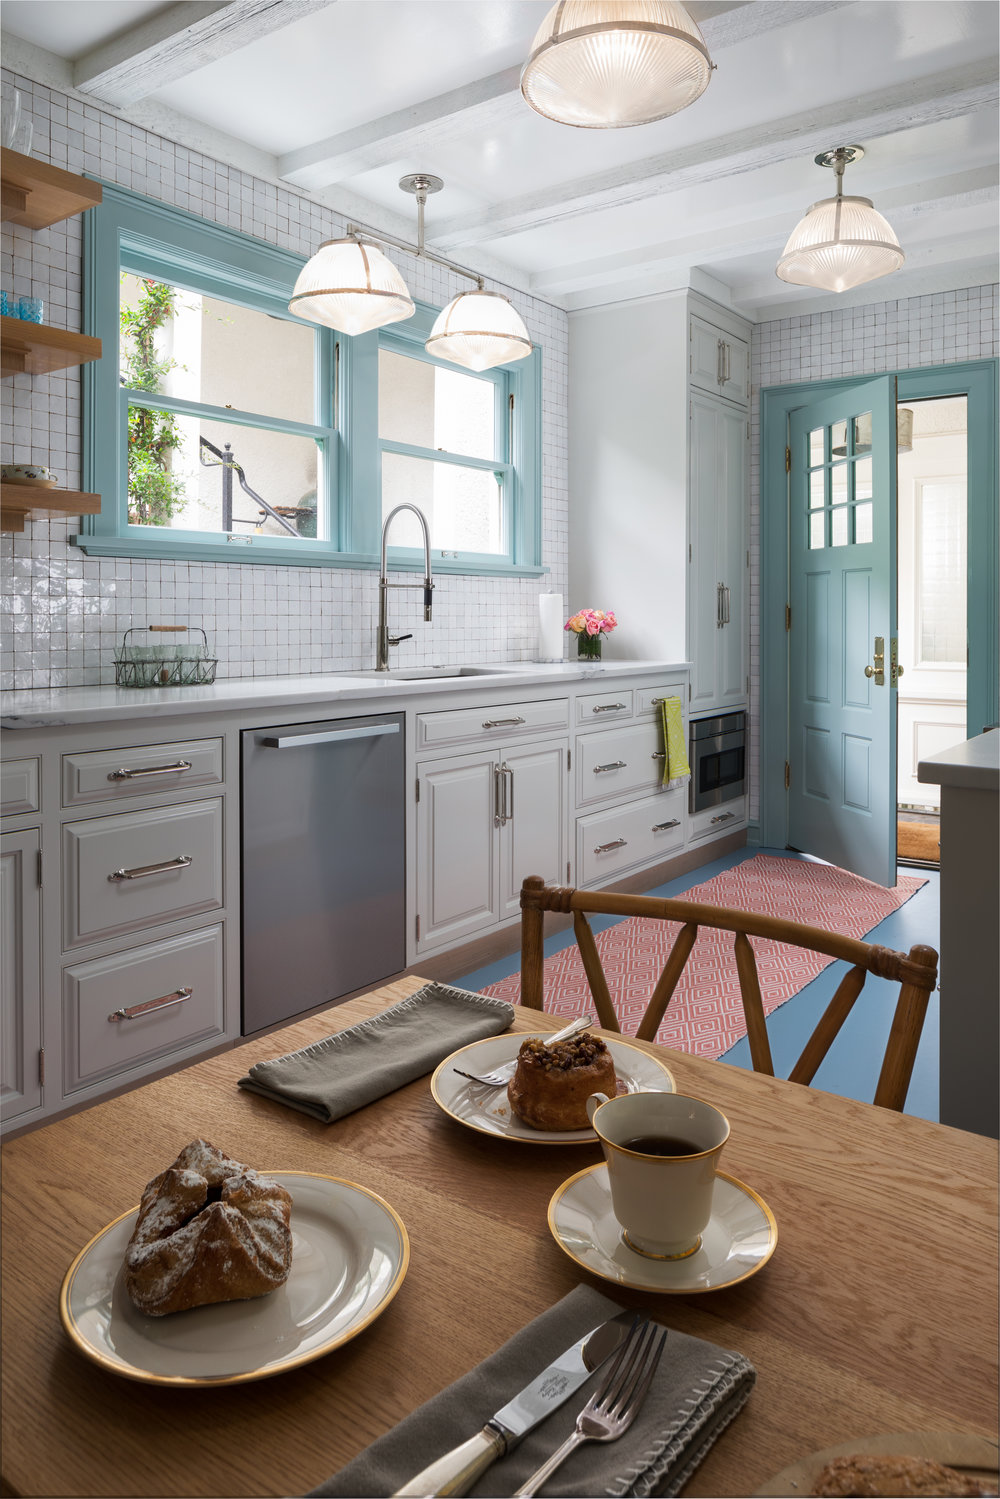 Portland doesn't have to be gray, this classic kitchen is bright and cheerful.